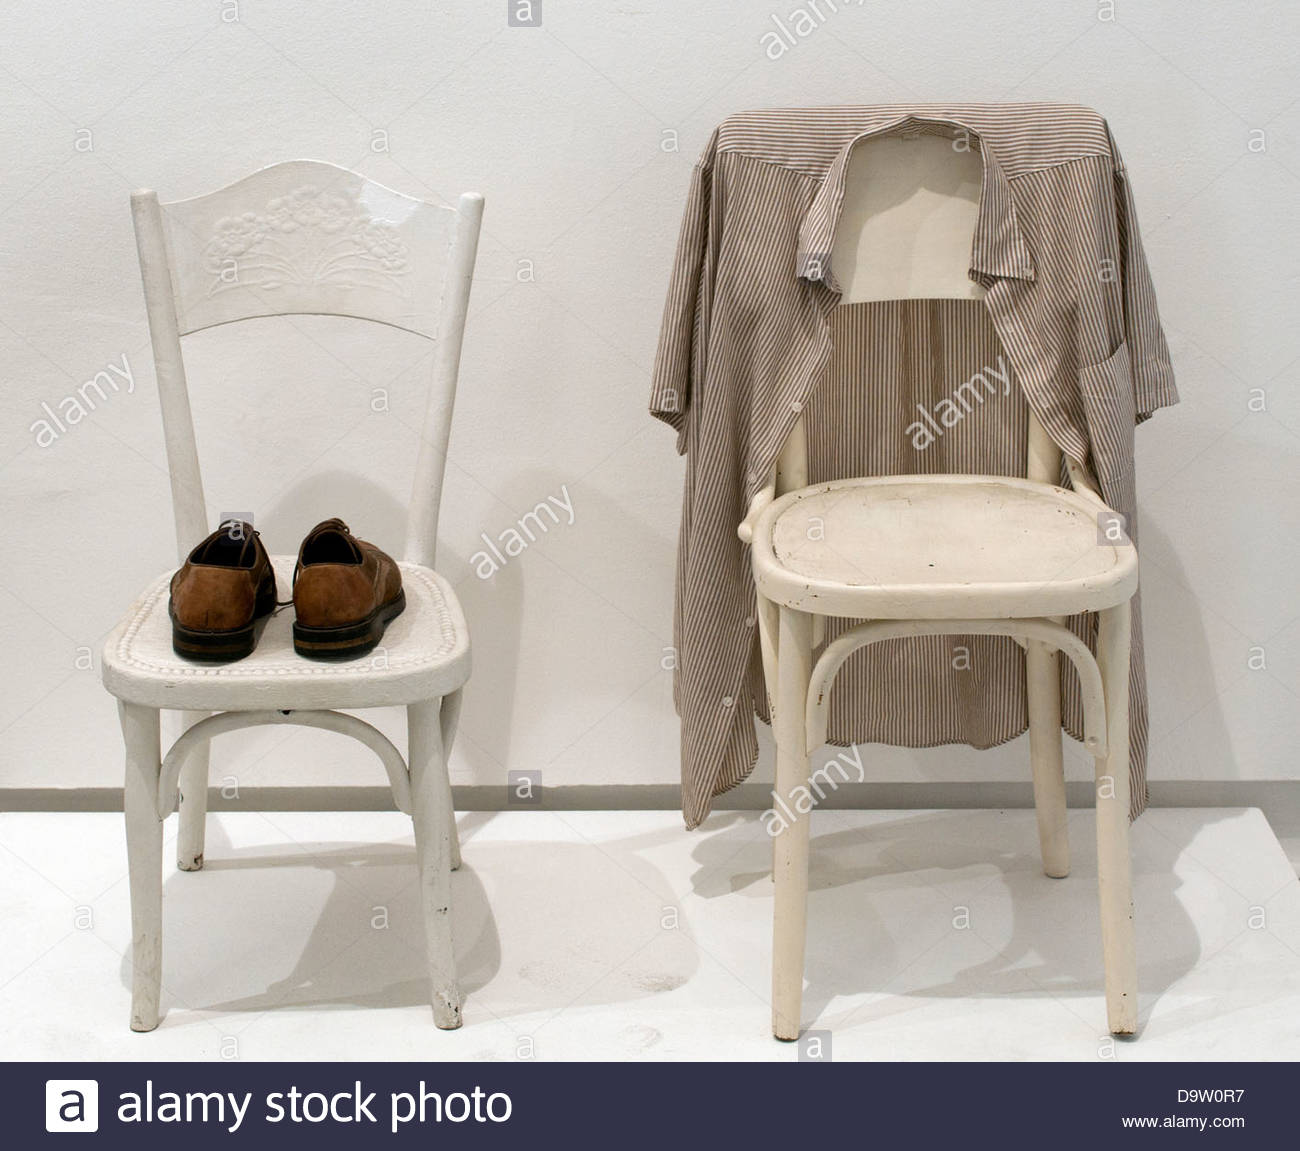 Deux chaises chaussures et chemise - Two chairs shoes and shirt 1964 George Brecht  American United States of America - Stock Image